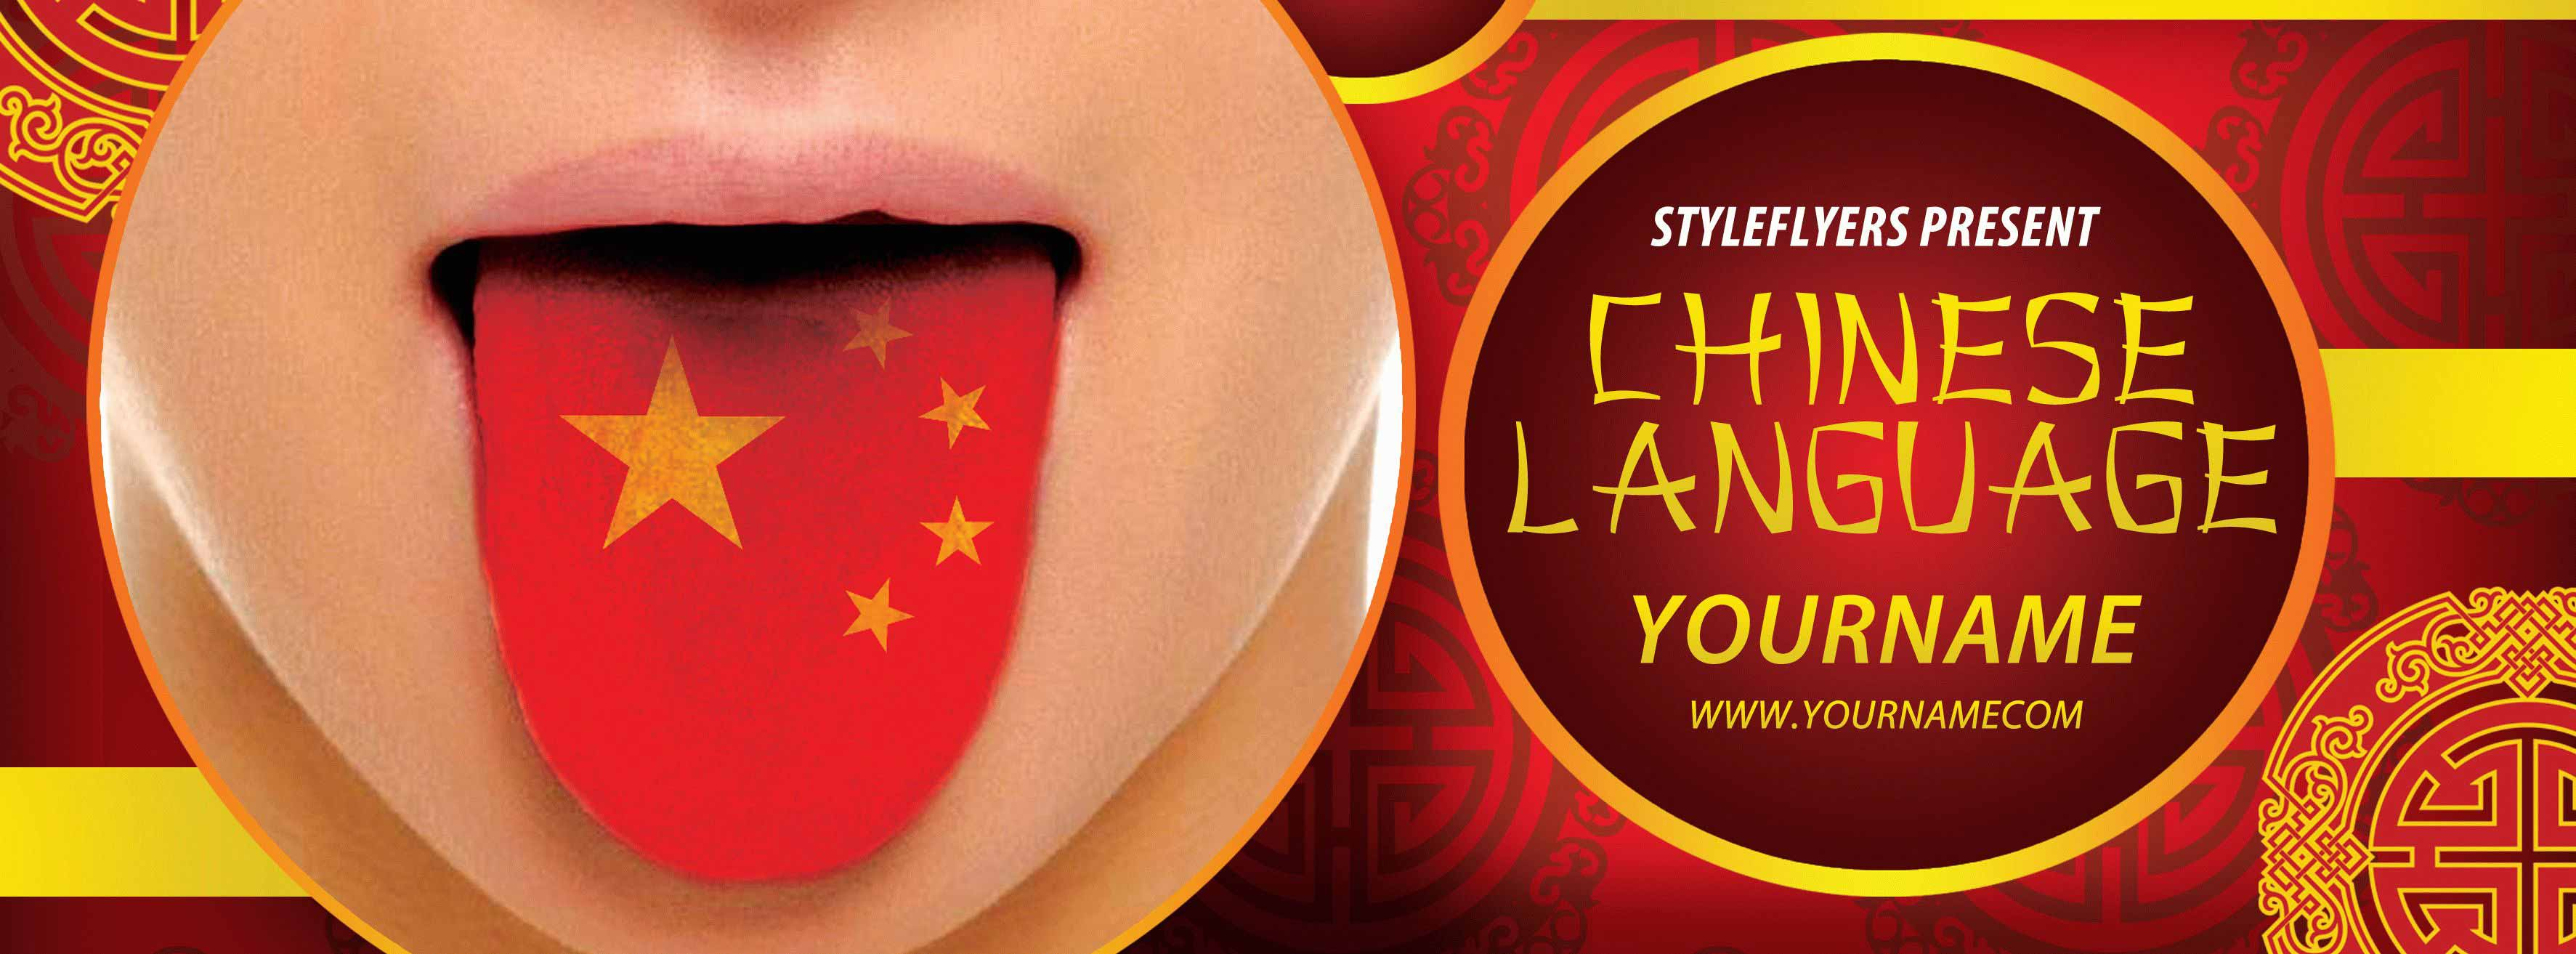 Chinese Language Course PSD Flyer Template